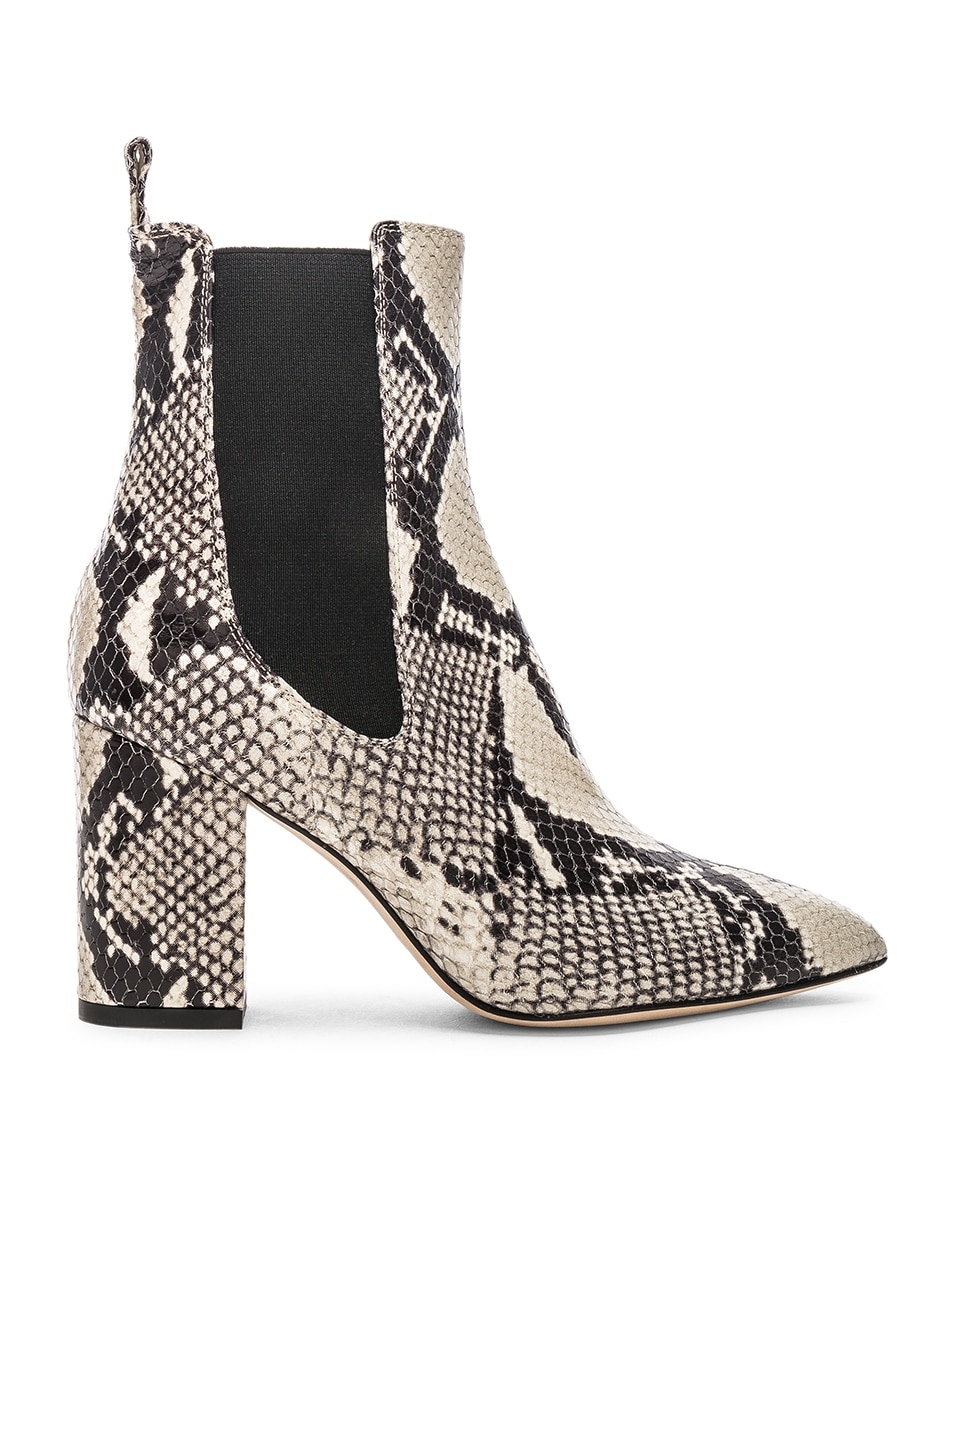 Paris Texas Ankle Boot Natural Snake durable service